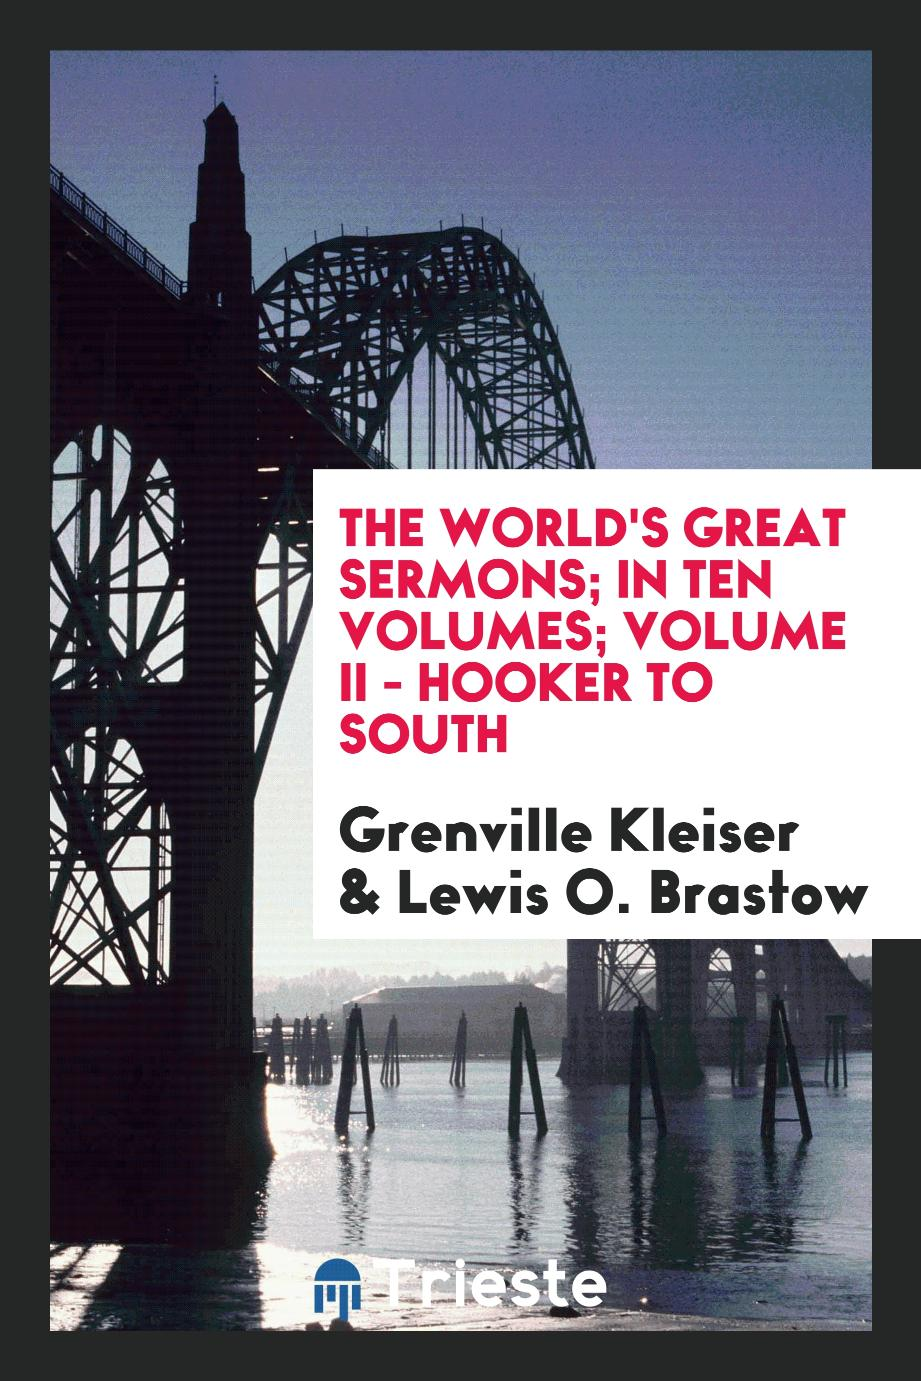 The World's Great Sermons; In Ten Volumes; Volume II - Hooker to South